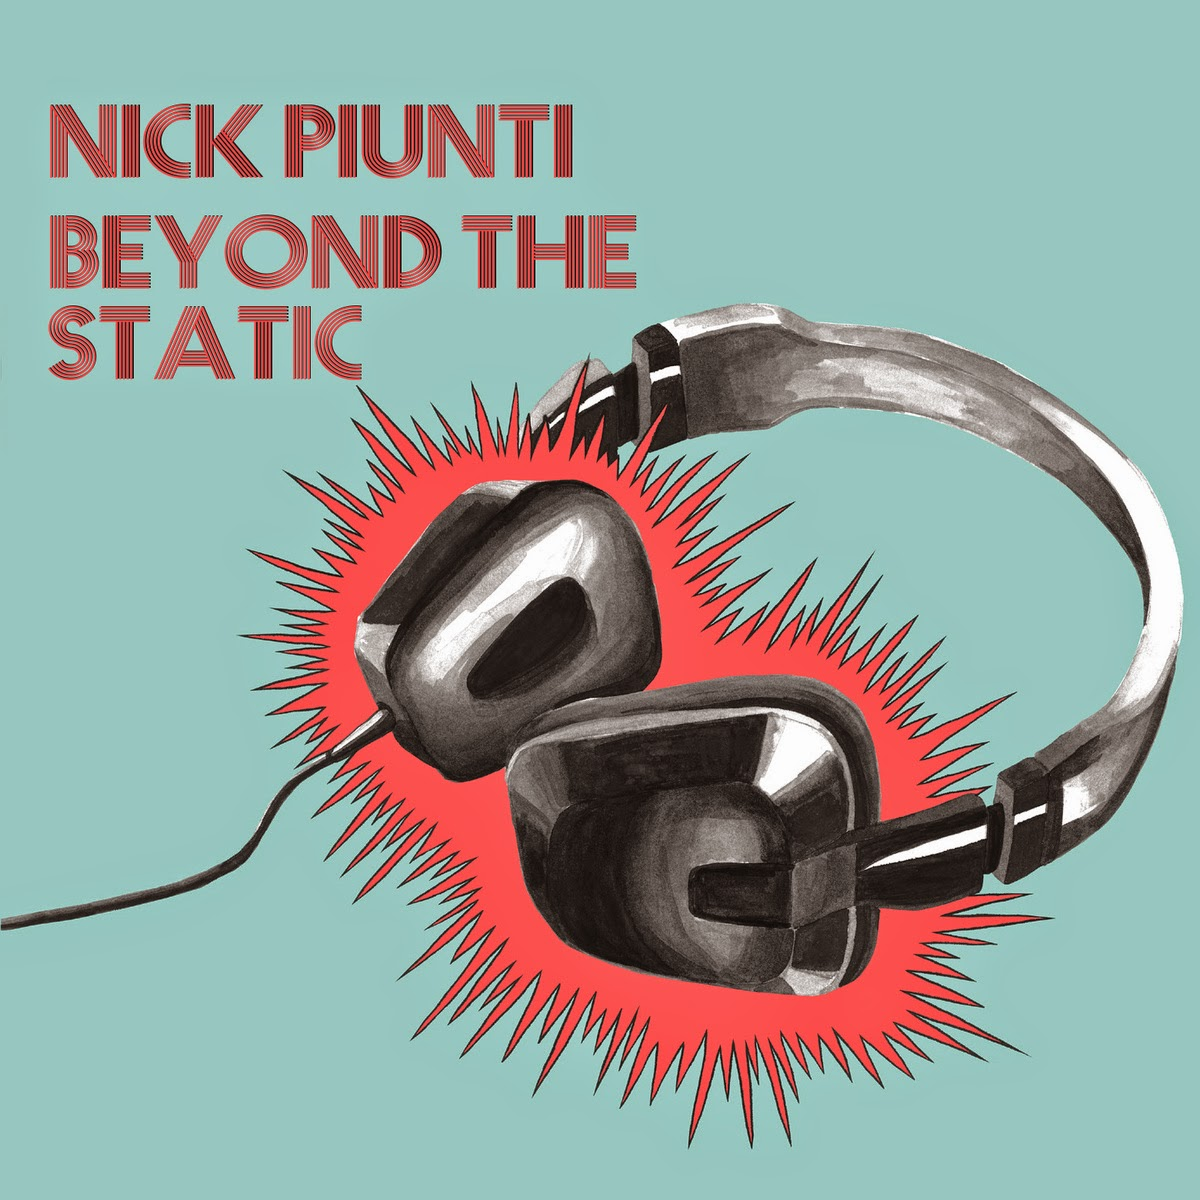 Nick Piunti - Reviews